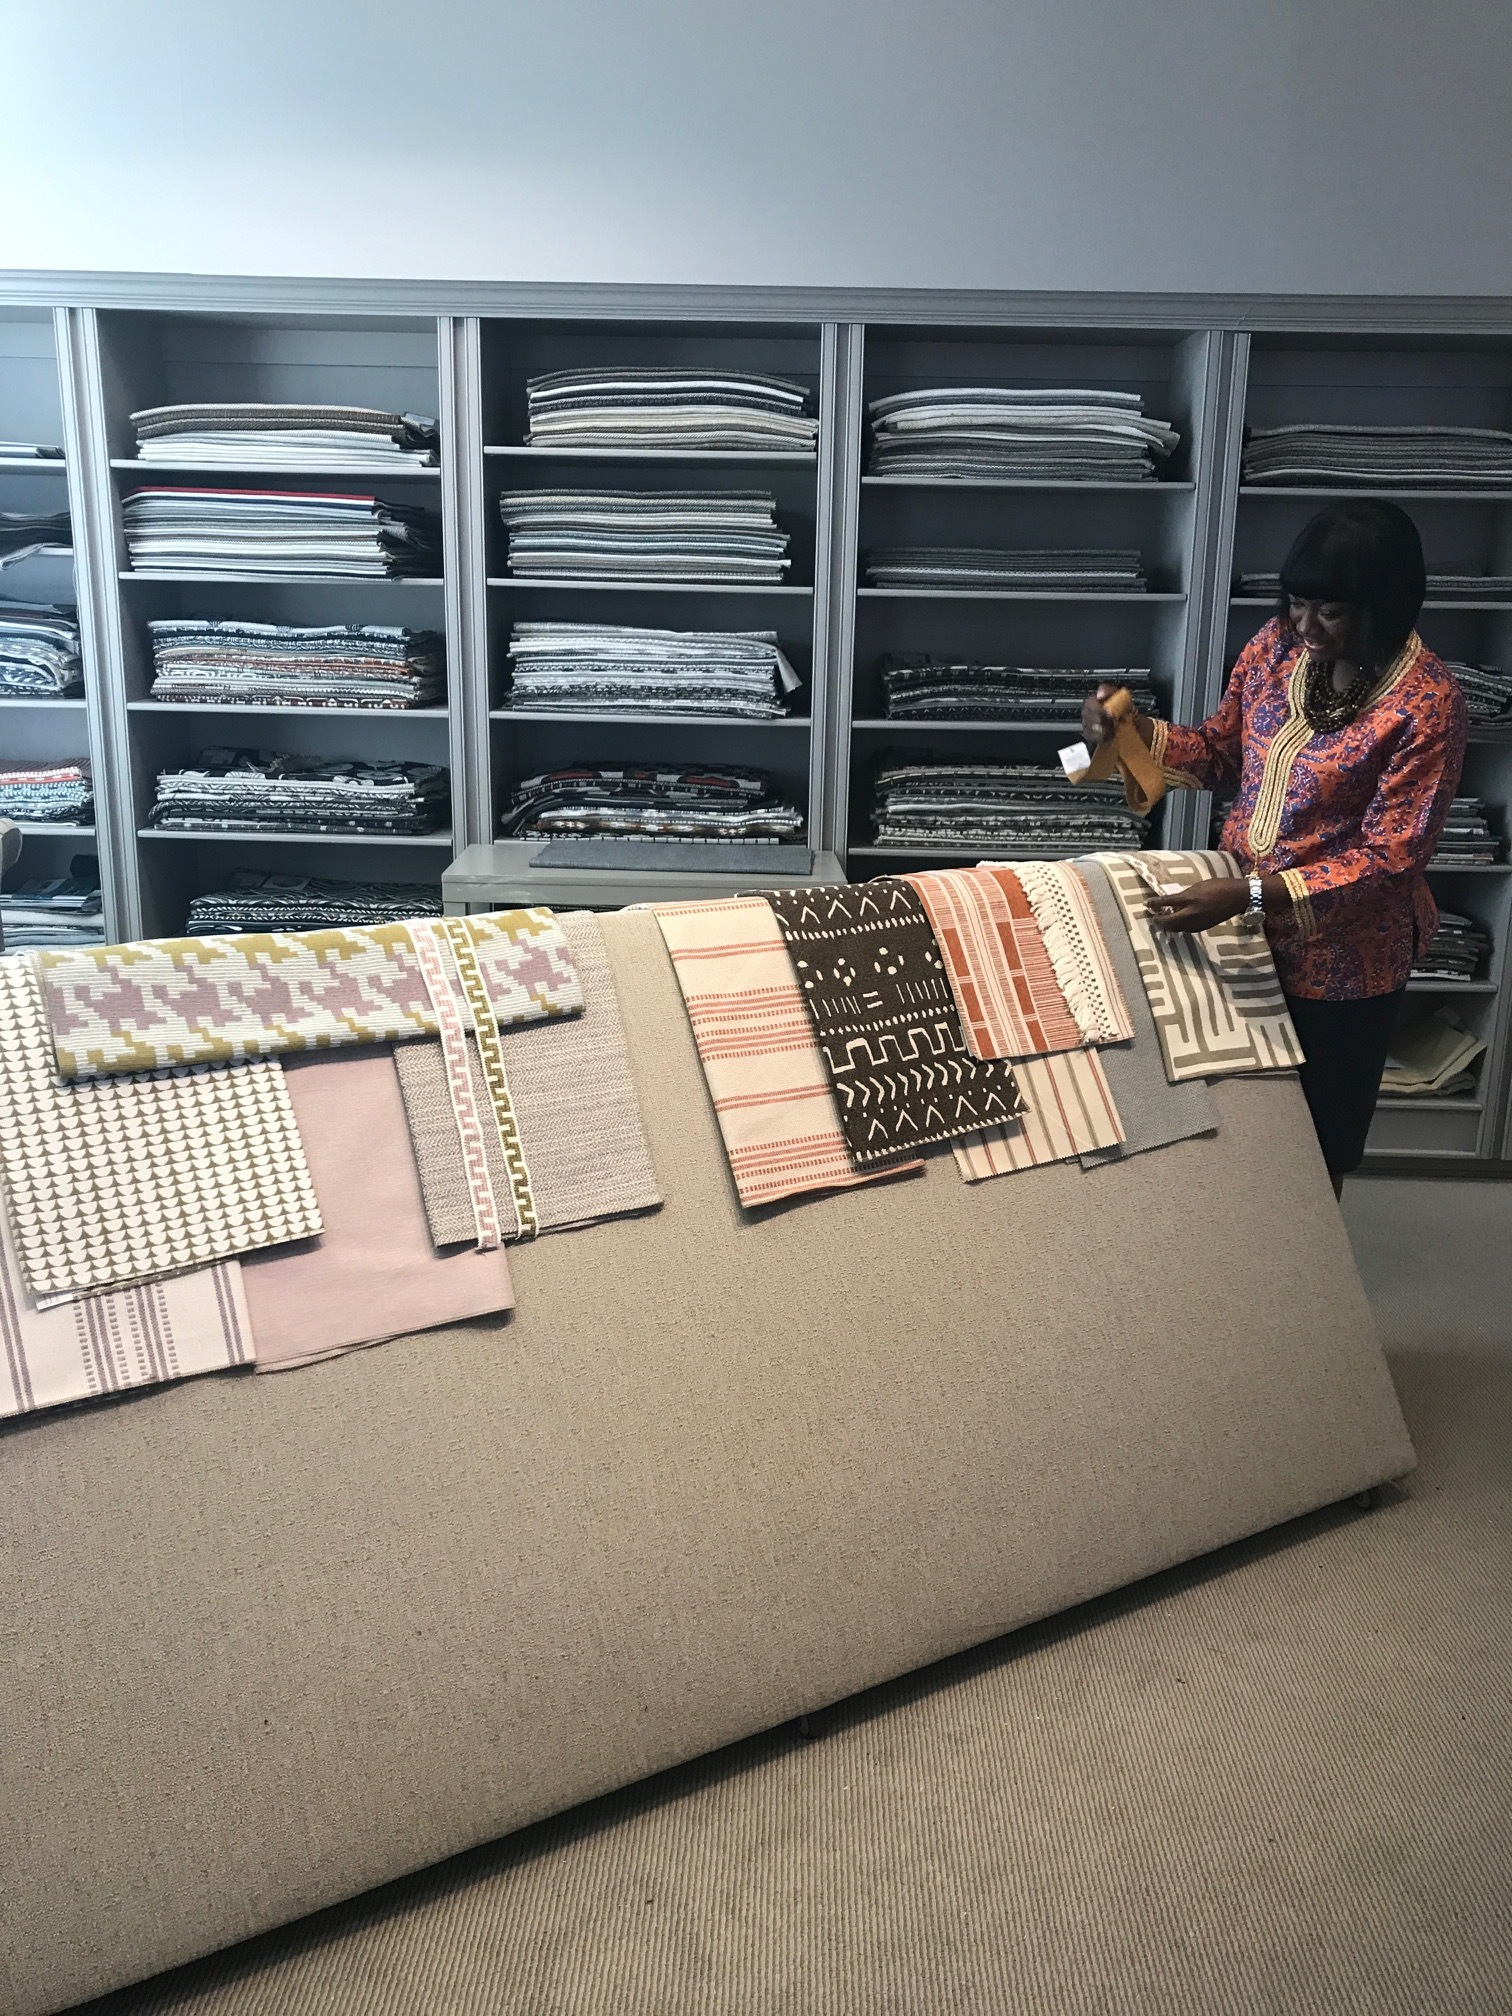 Cheryl Luckett, interior designer and owner Dwell by Cheryl, is the newest addition to the Revolution team. Cheryl is shown here putting together some correlates of Revolution fabrics to show our interior design customers!